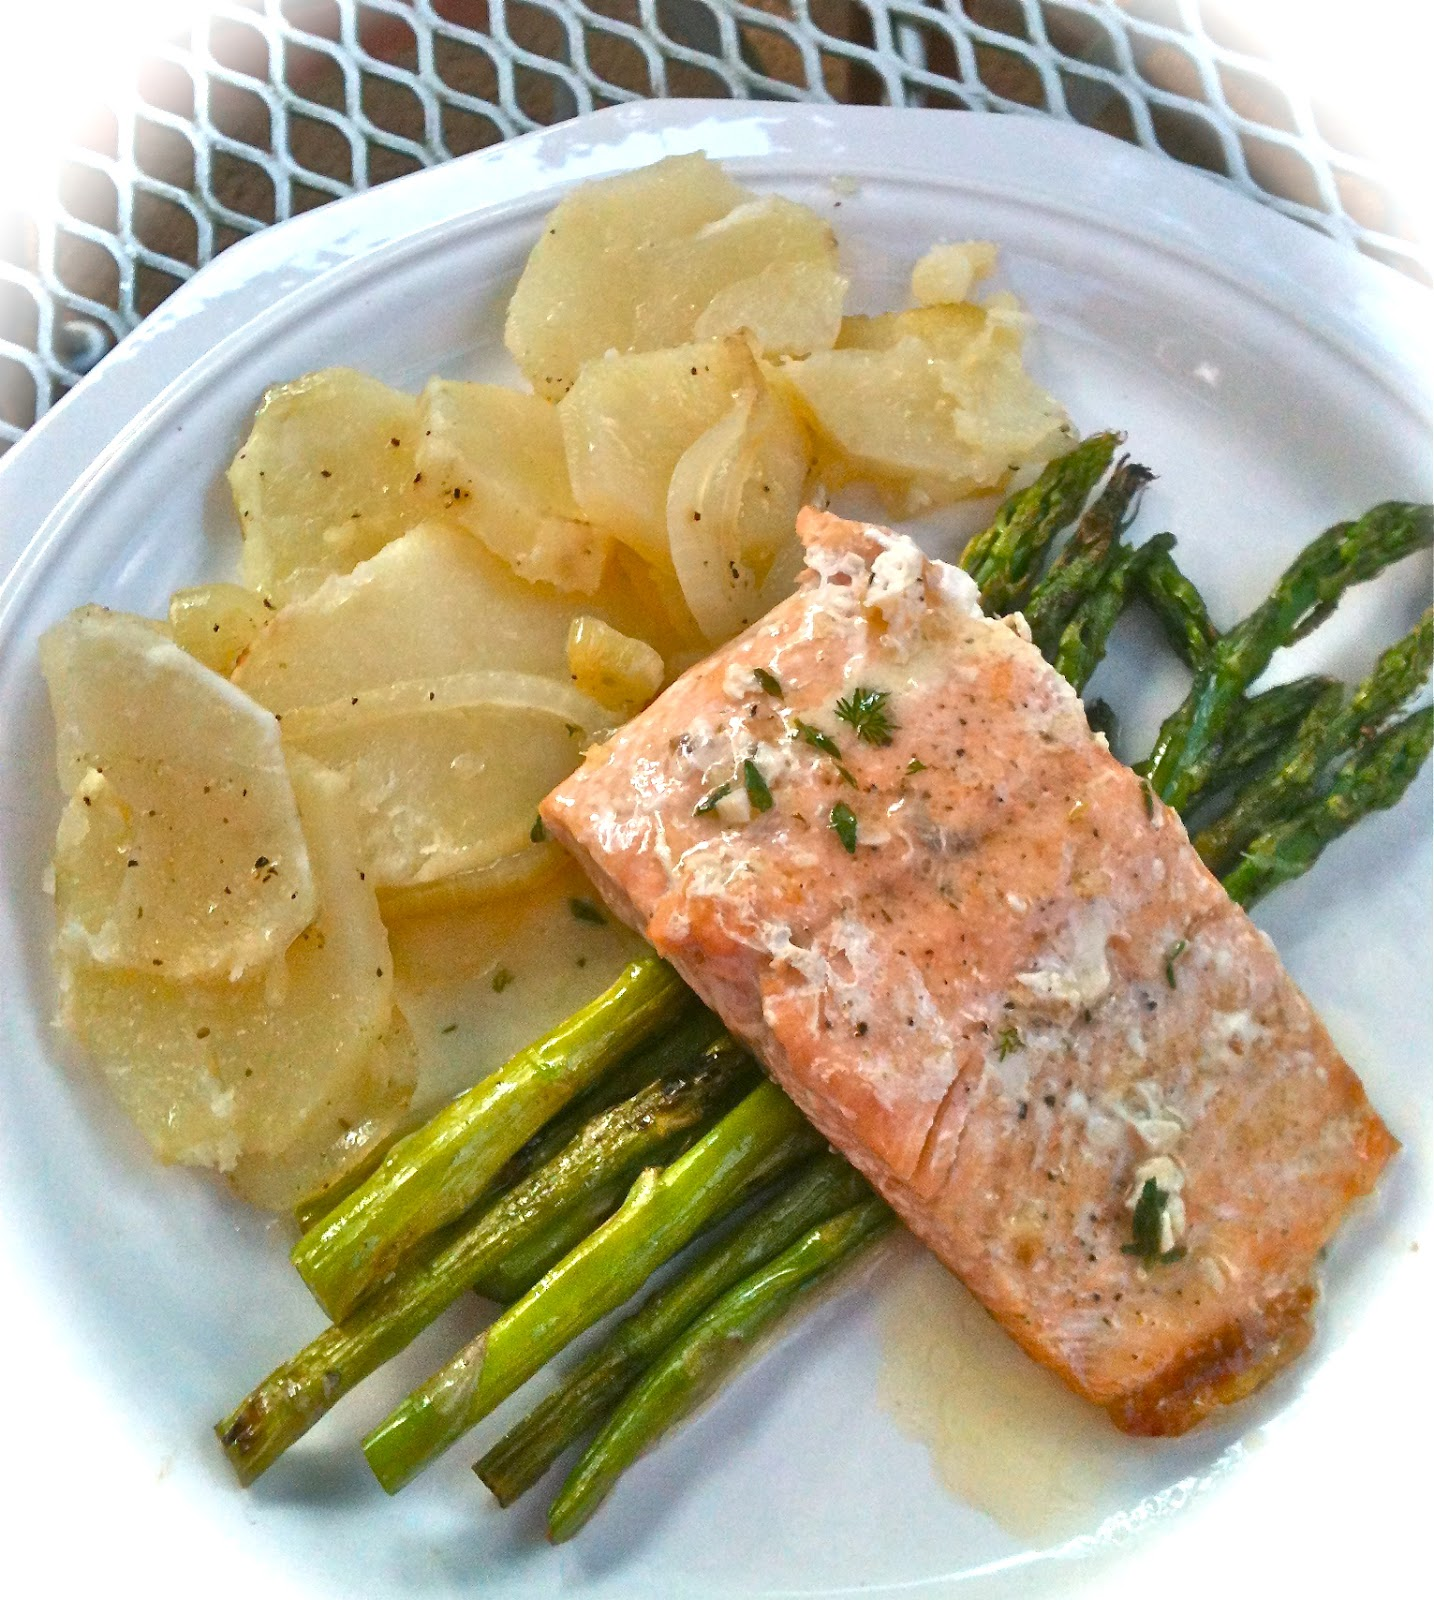 everyday donna: Grilled Salmon With Herbed Lime Butter